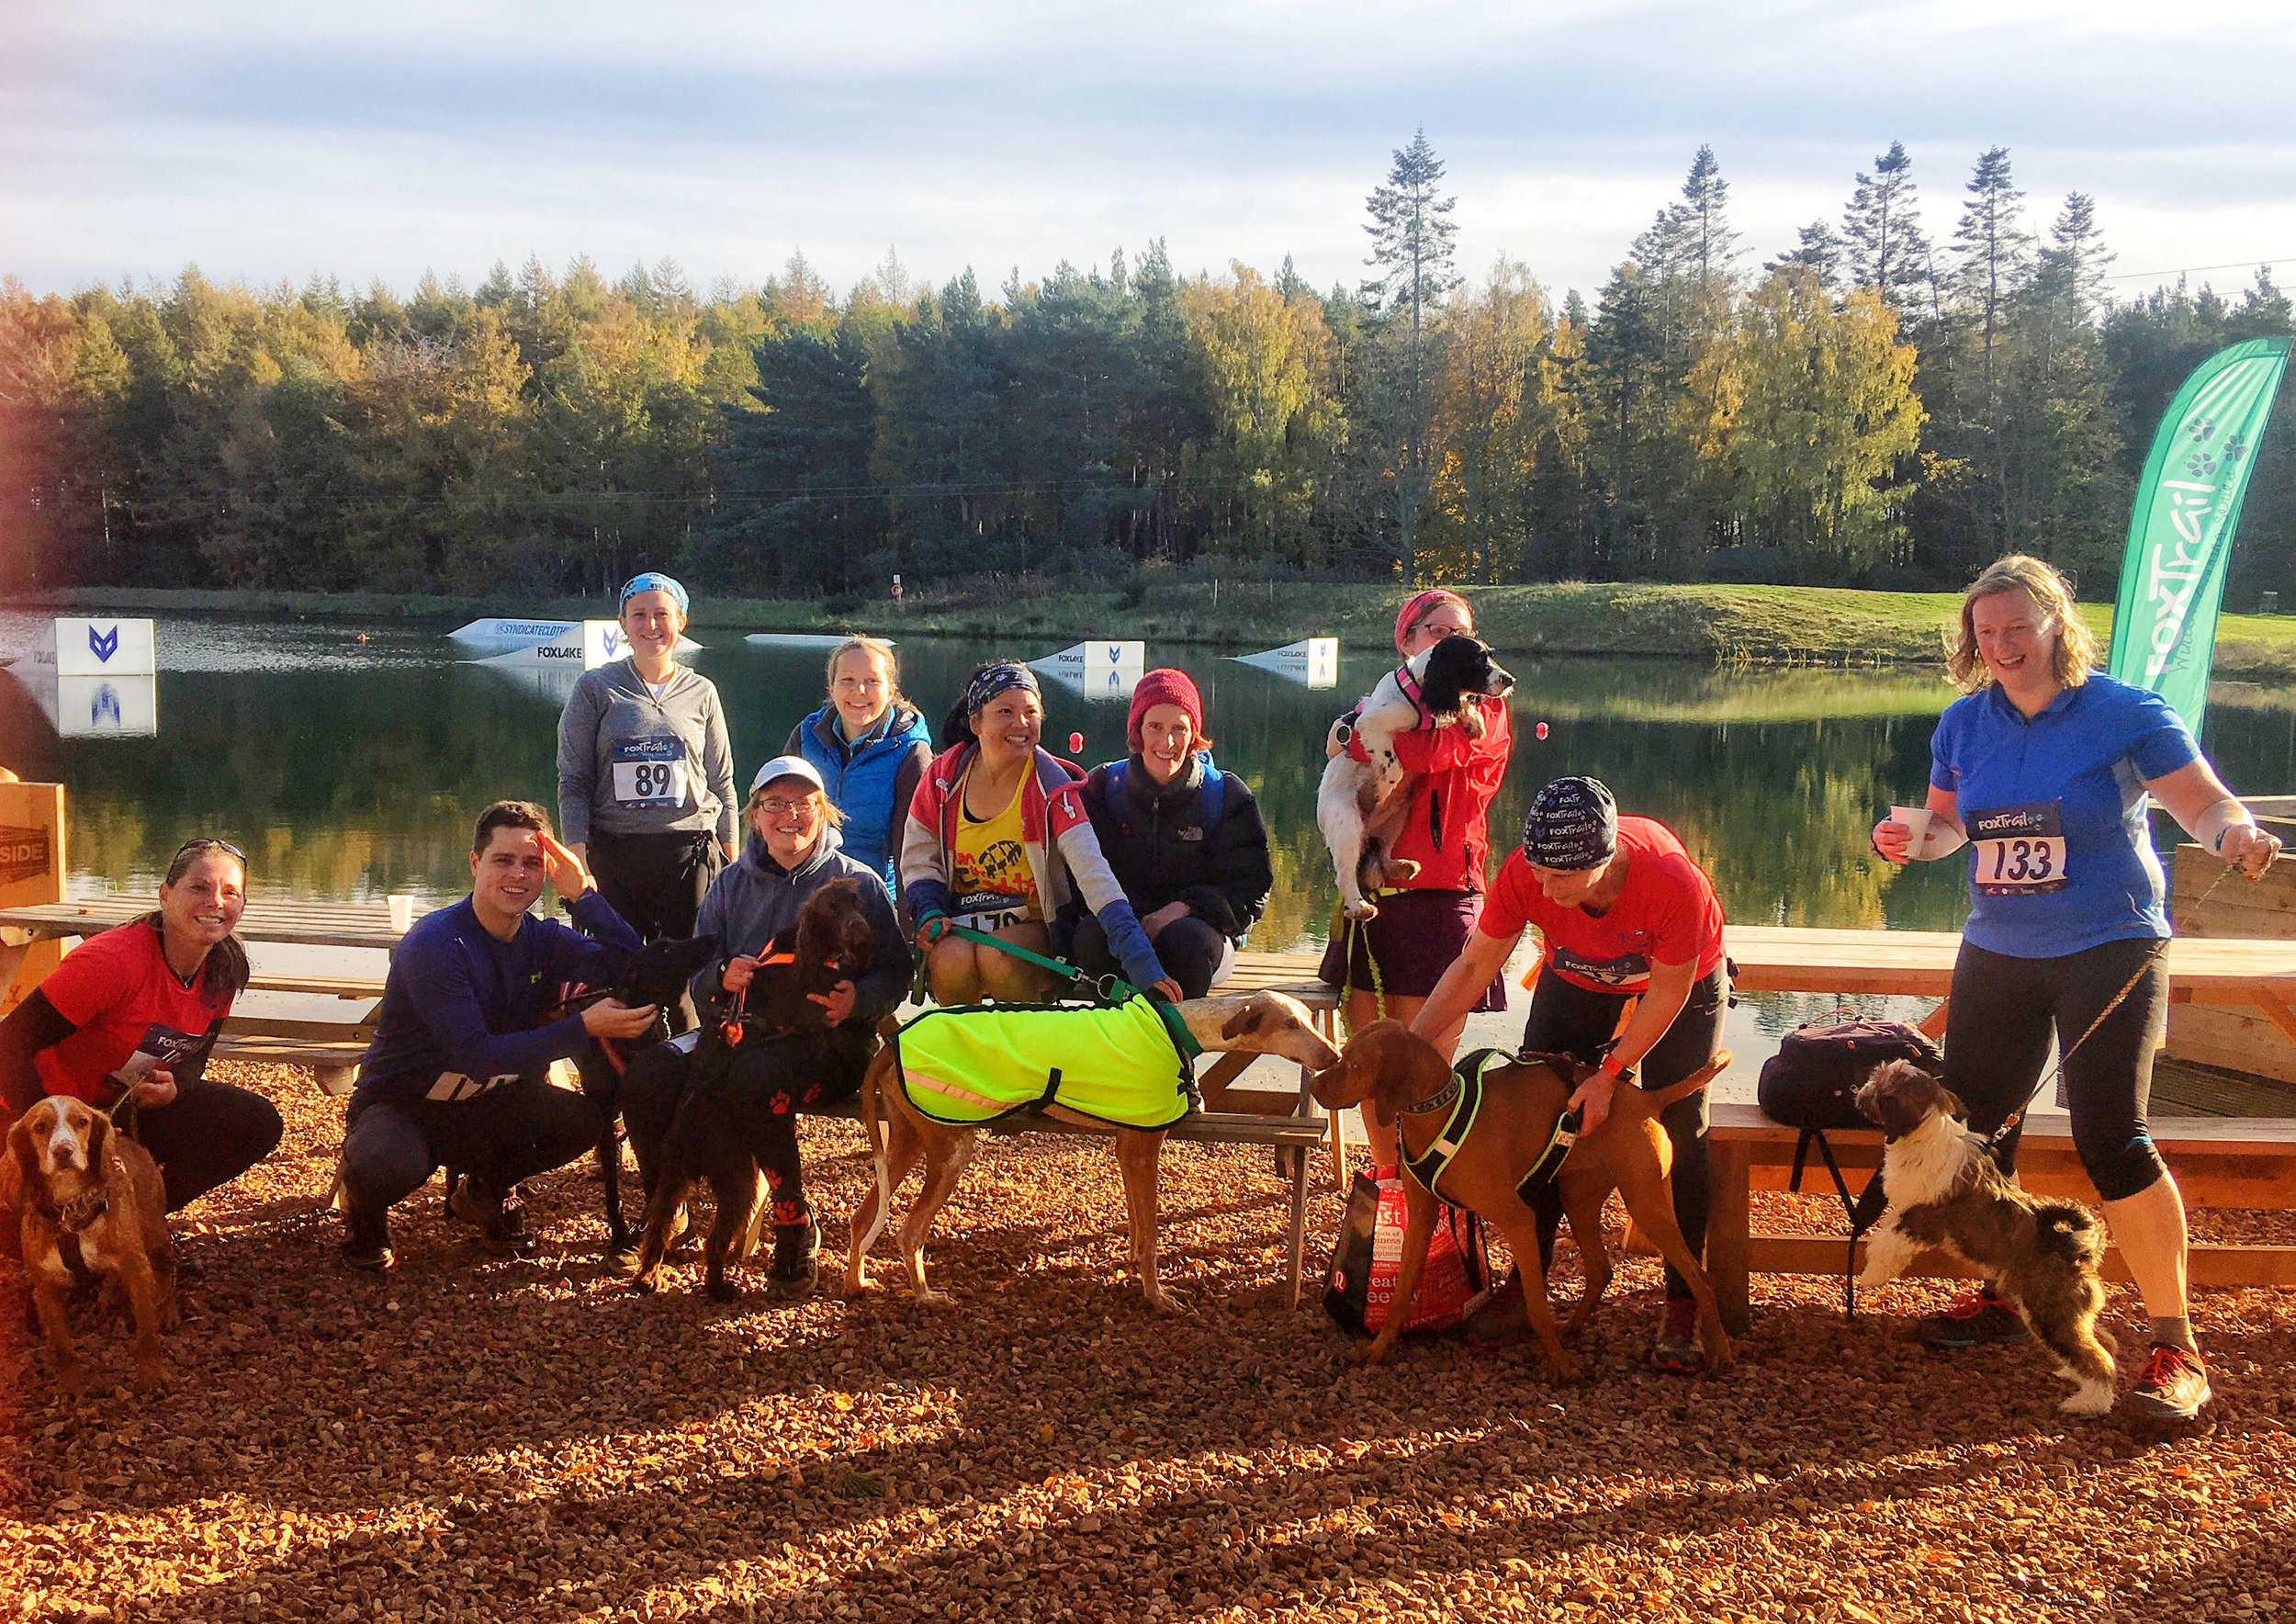 Some of the canicrossers from Cani-Sports Edinburgh - do you have a dog and want to run?  Look them up and join them!